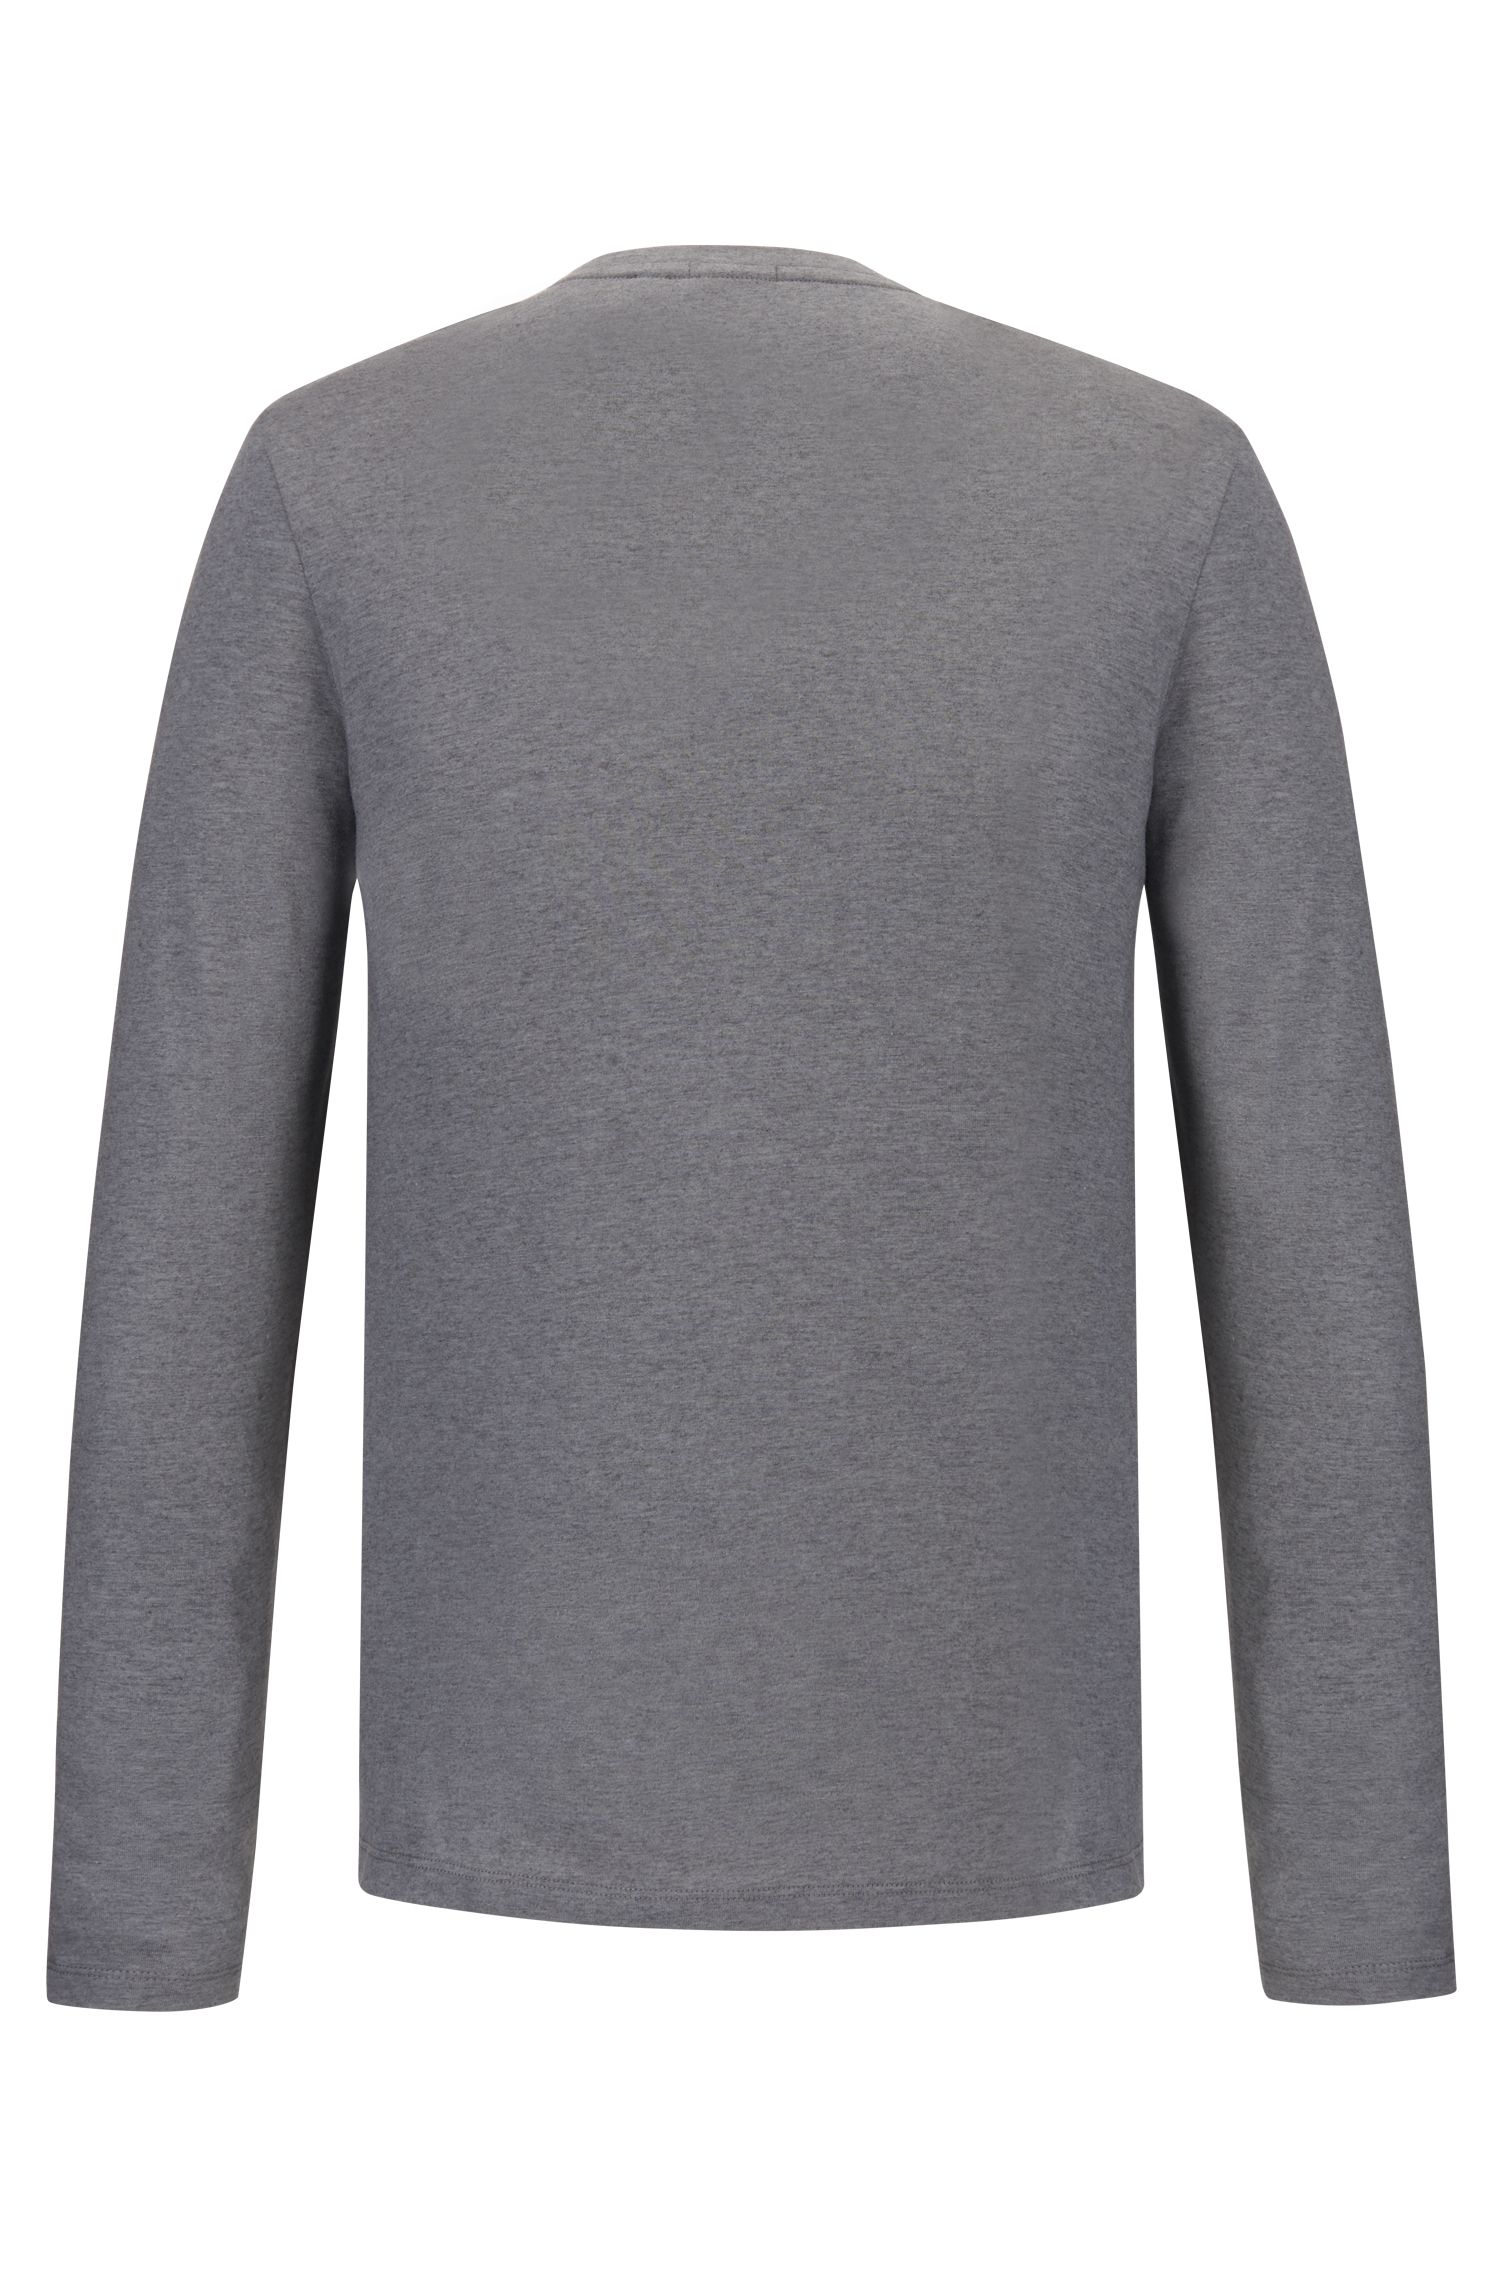 Cotton-Cashmere T-Shirt | Tenison, Grey